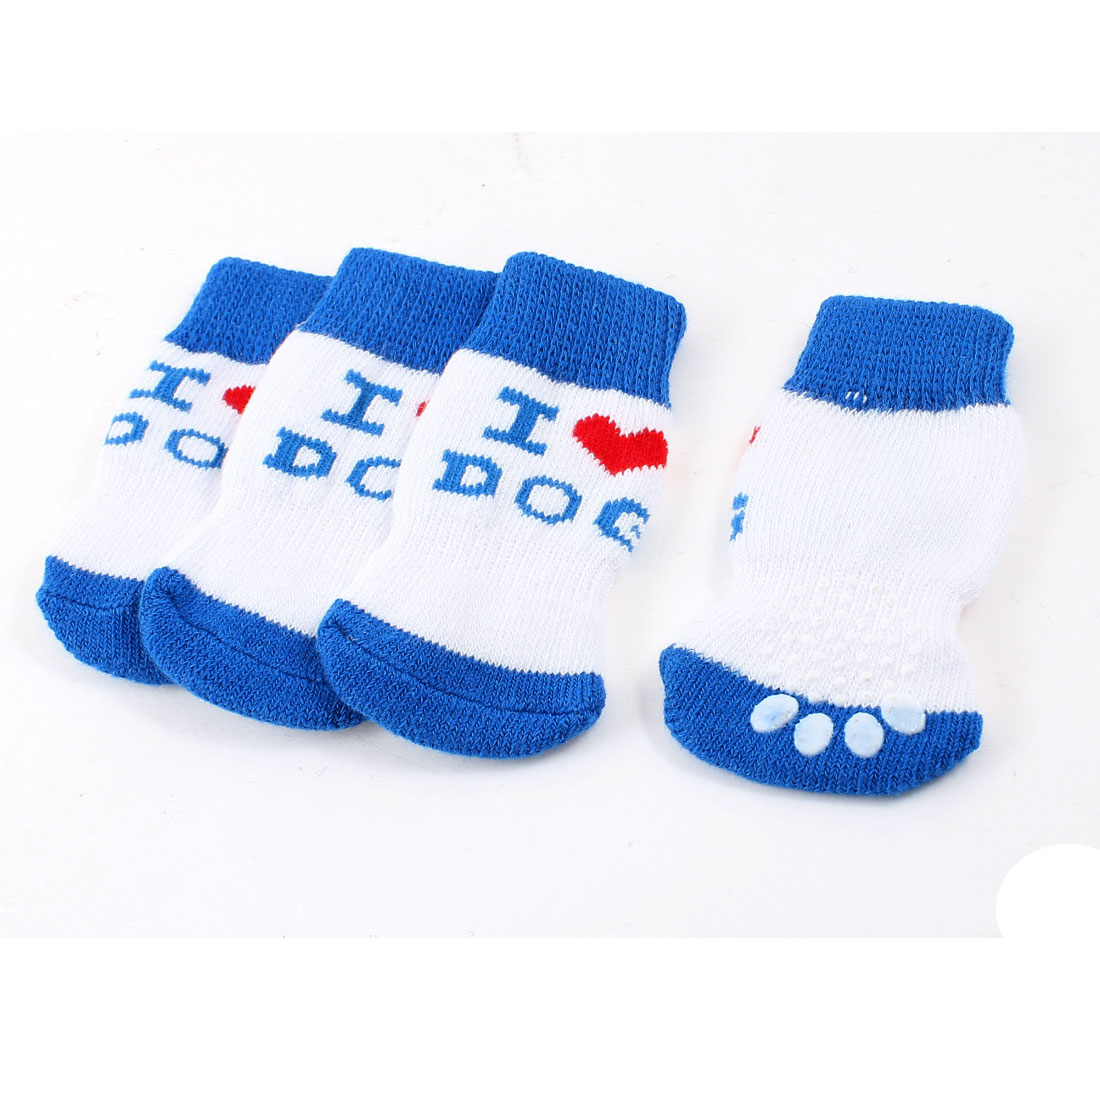 2 Pairs White Blue Nonslip Paw Printed Acrylic Dog Puppy Pet Socks Size L